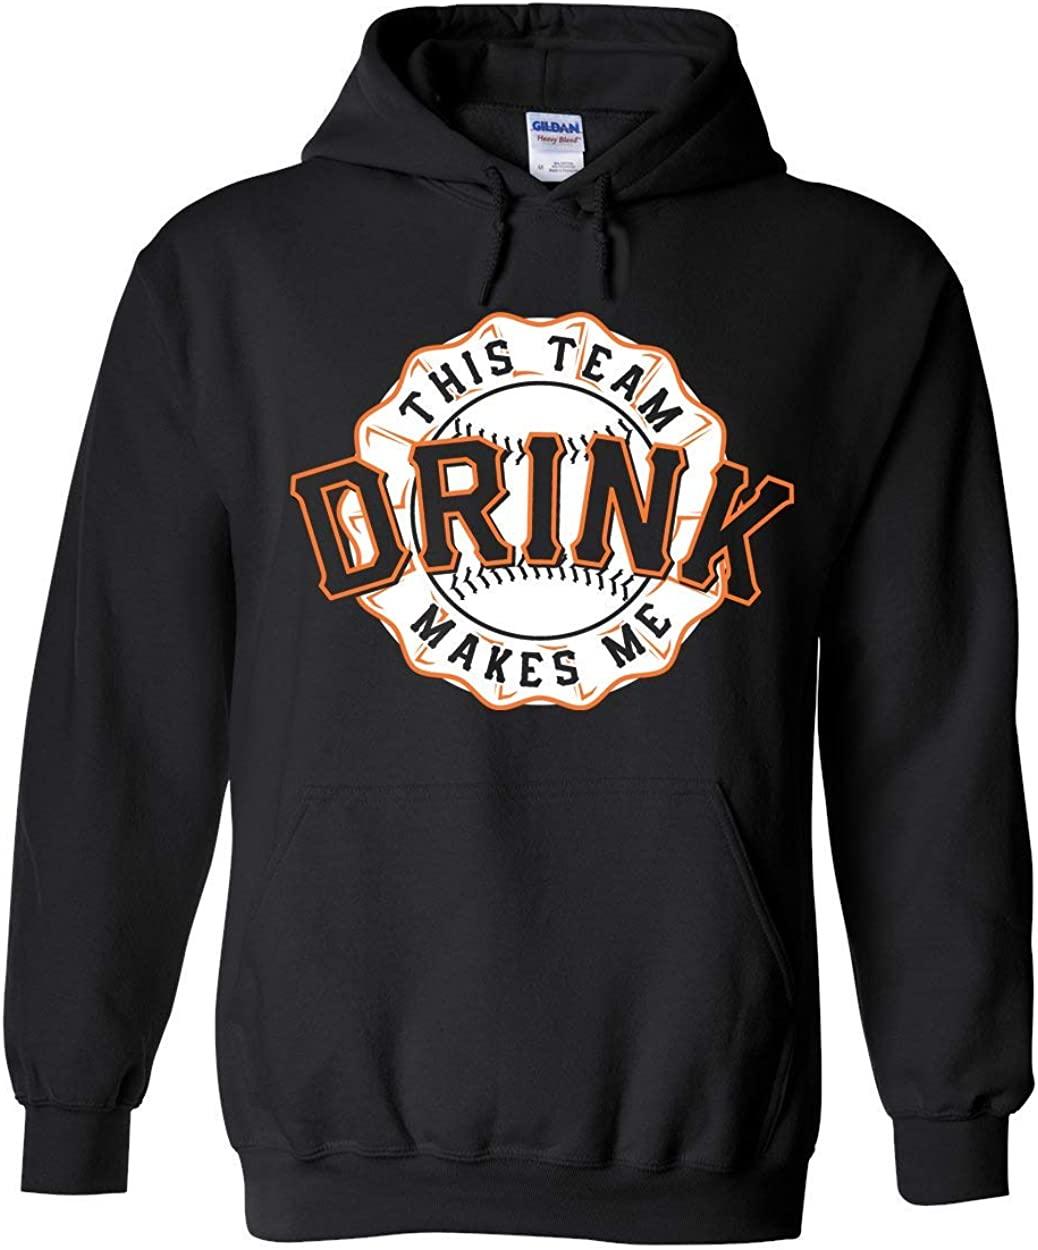 Americas Finest Apparel San Francisco This Team Makes Me Drink BB Hoodie